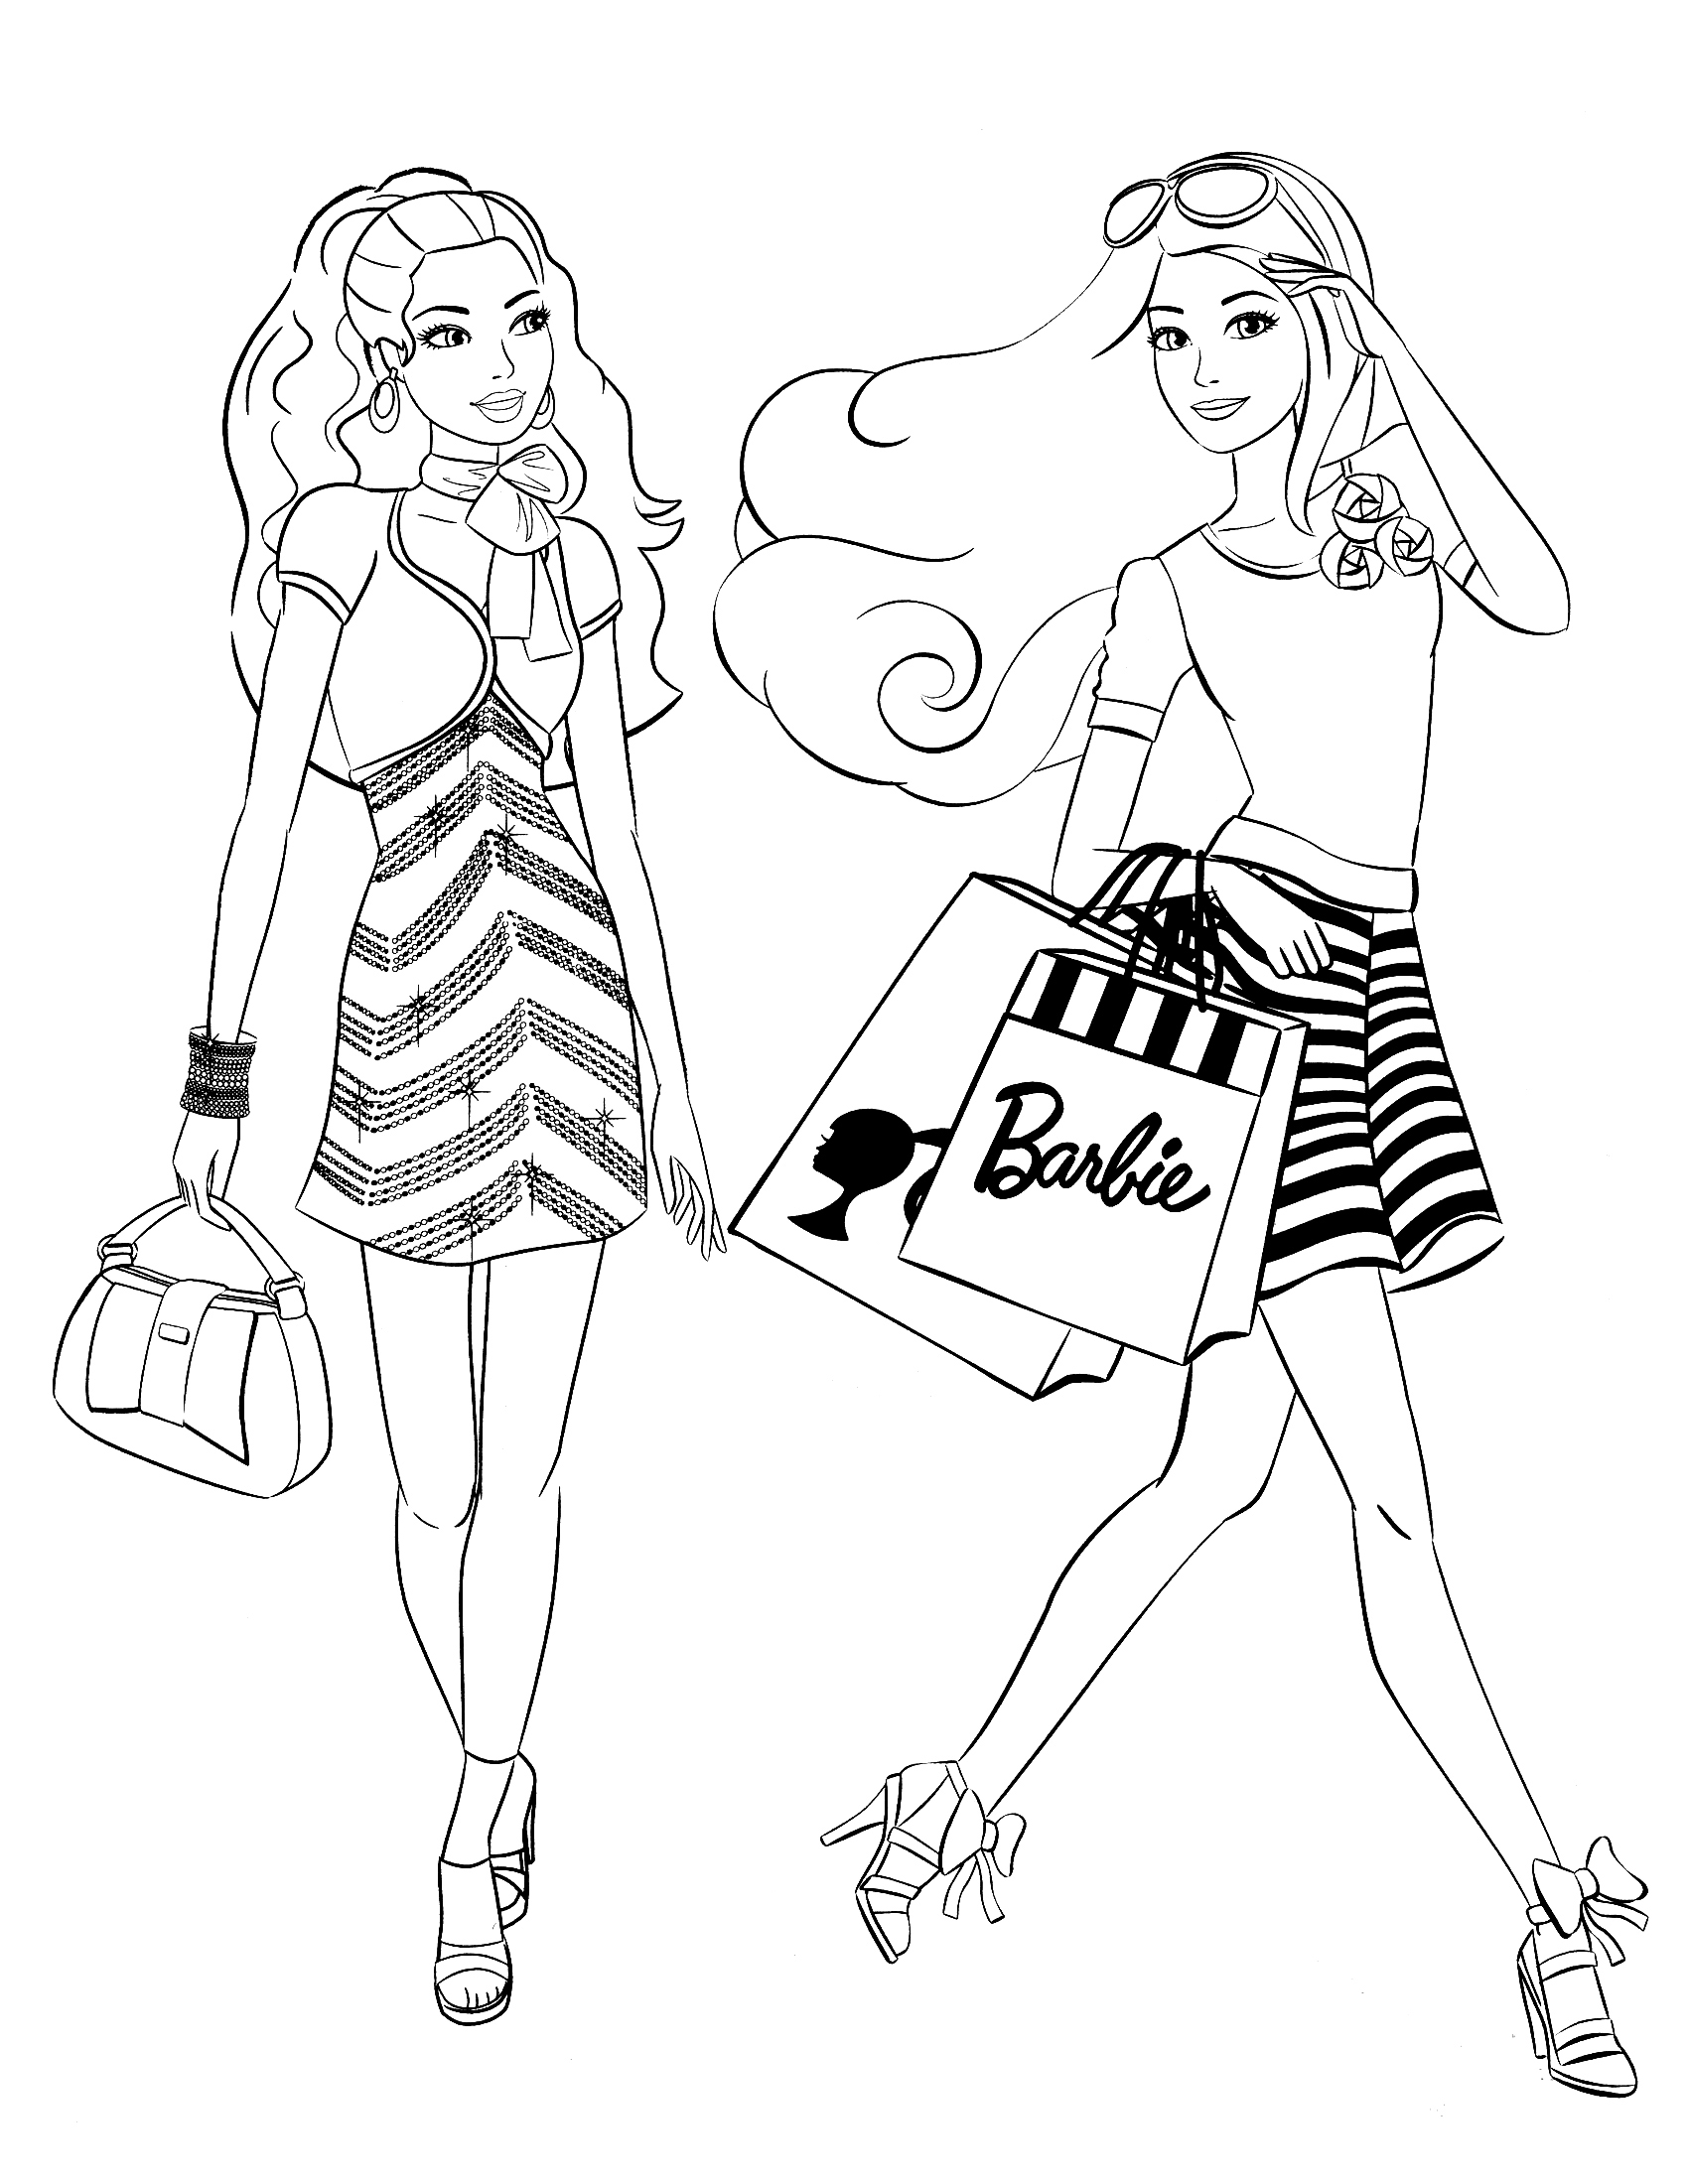 Barbie Coloring Pages Coloringsuite Download Of Pretty Cute Anime Girls Coloring Pages for Kids Womanmate Collection